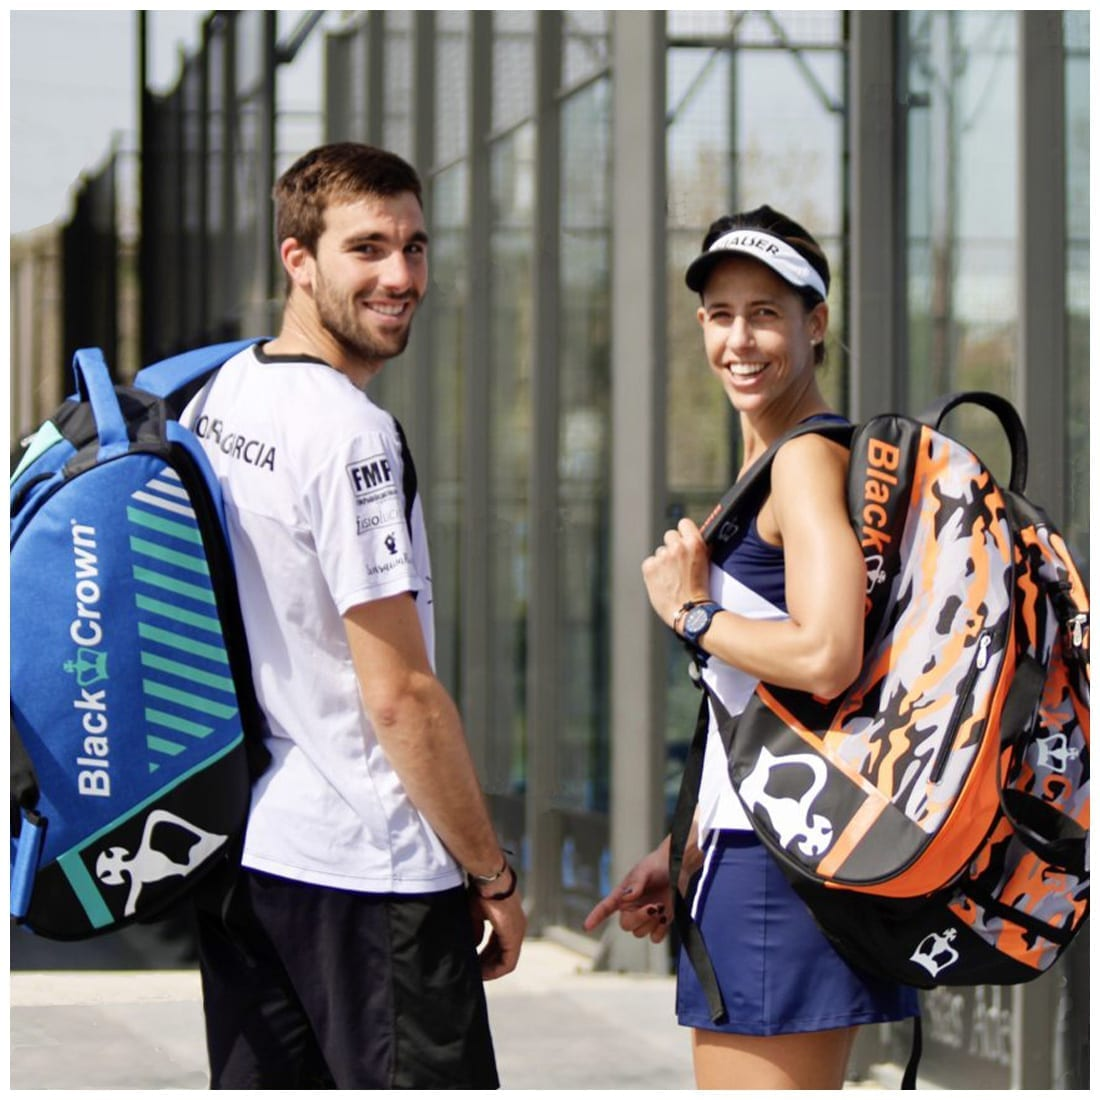 Marta Marrero and Aitor Garcia, World Padel Tour Players (WPT) for Black Crown and backpack and Padel rackets sold by I Love Padel,